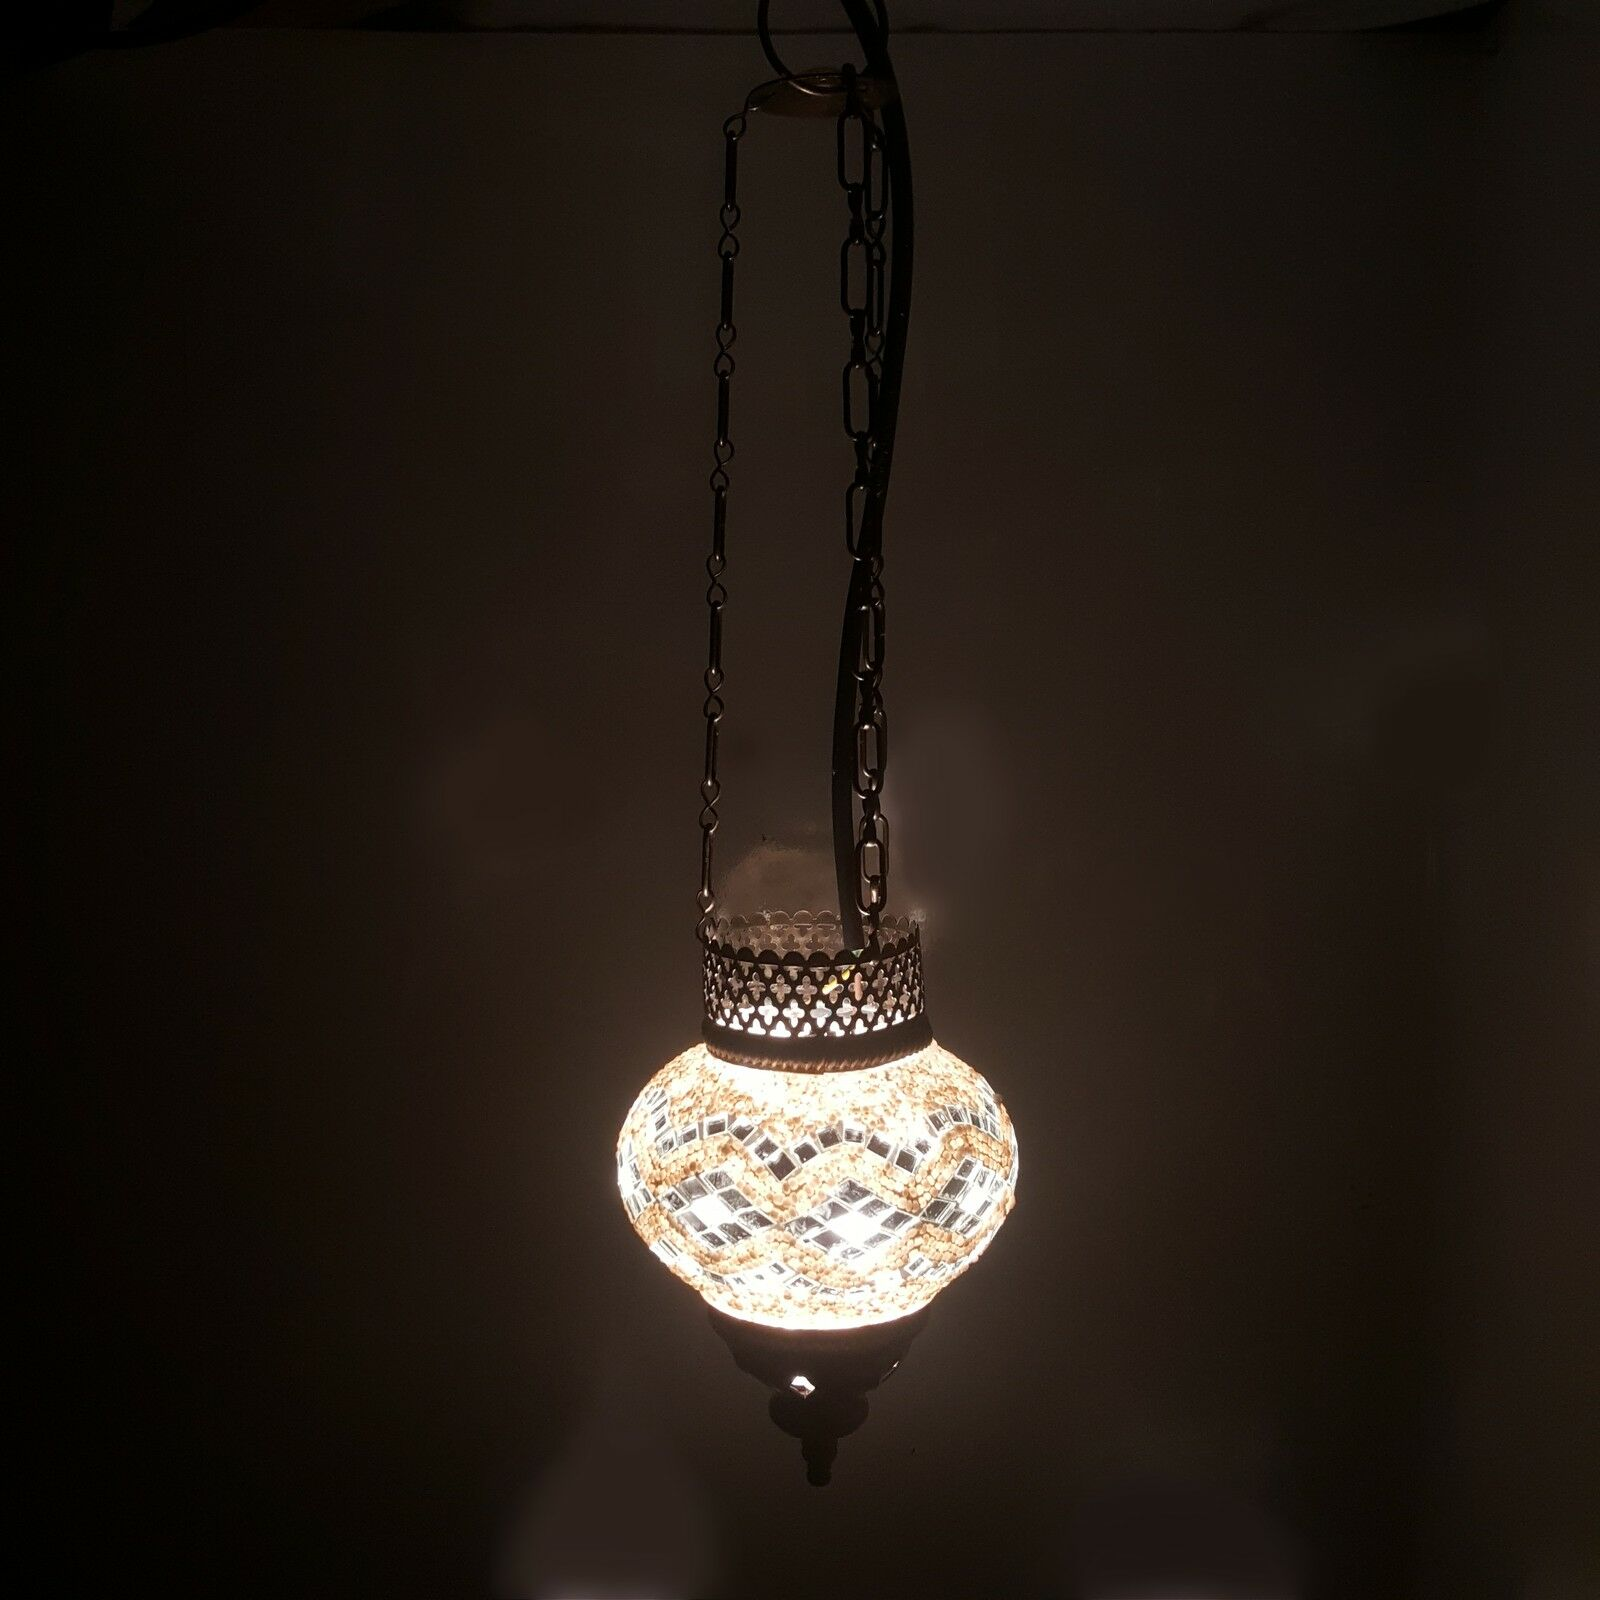 Details about turkish moroccan colourful mosaic hanging lamp light uk top seller